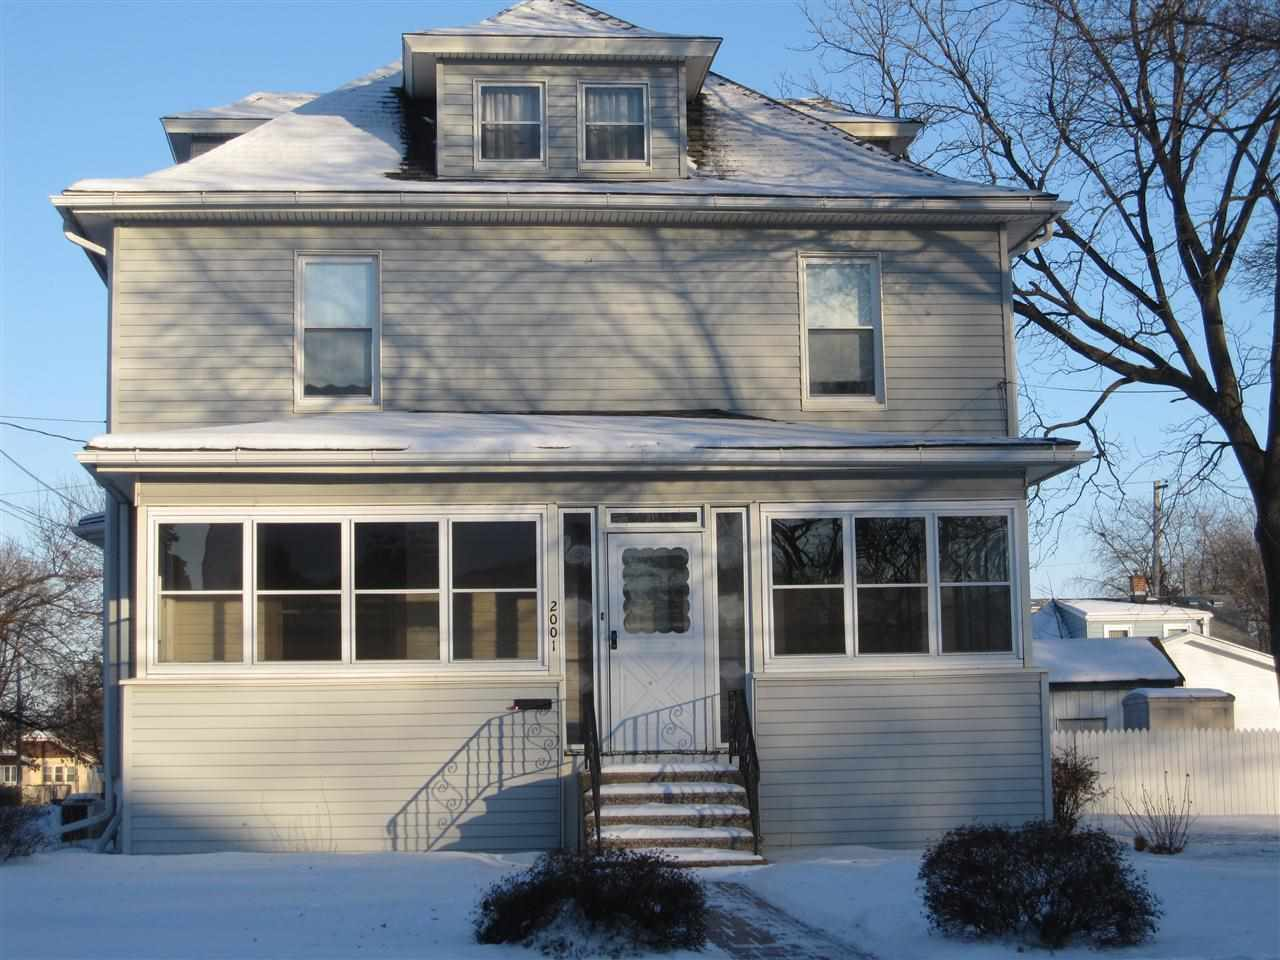 Rental Homes for Rent, ListingId:31230991, location: 2001 30TH Street Rock Island 61201